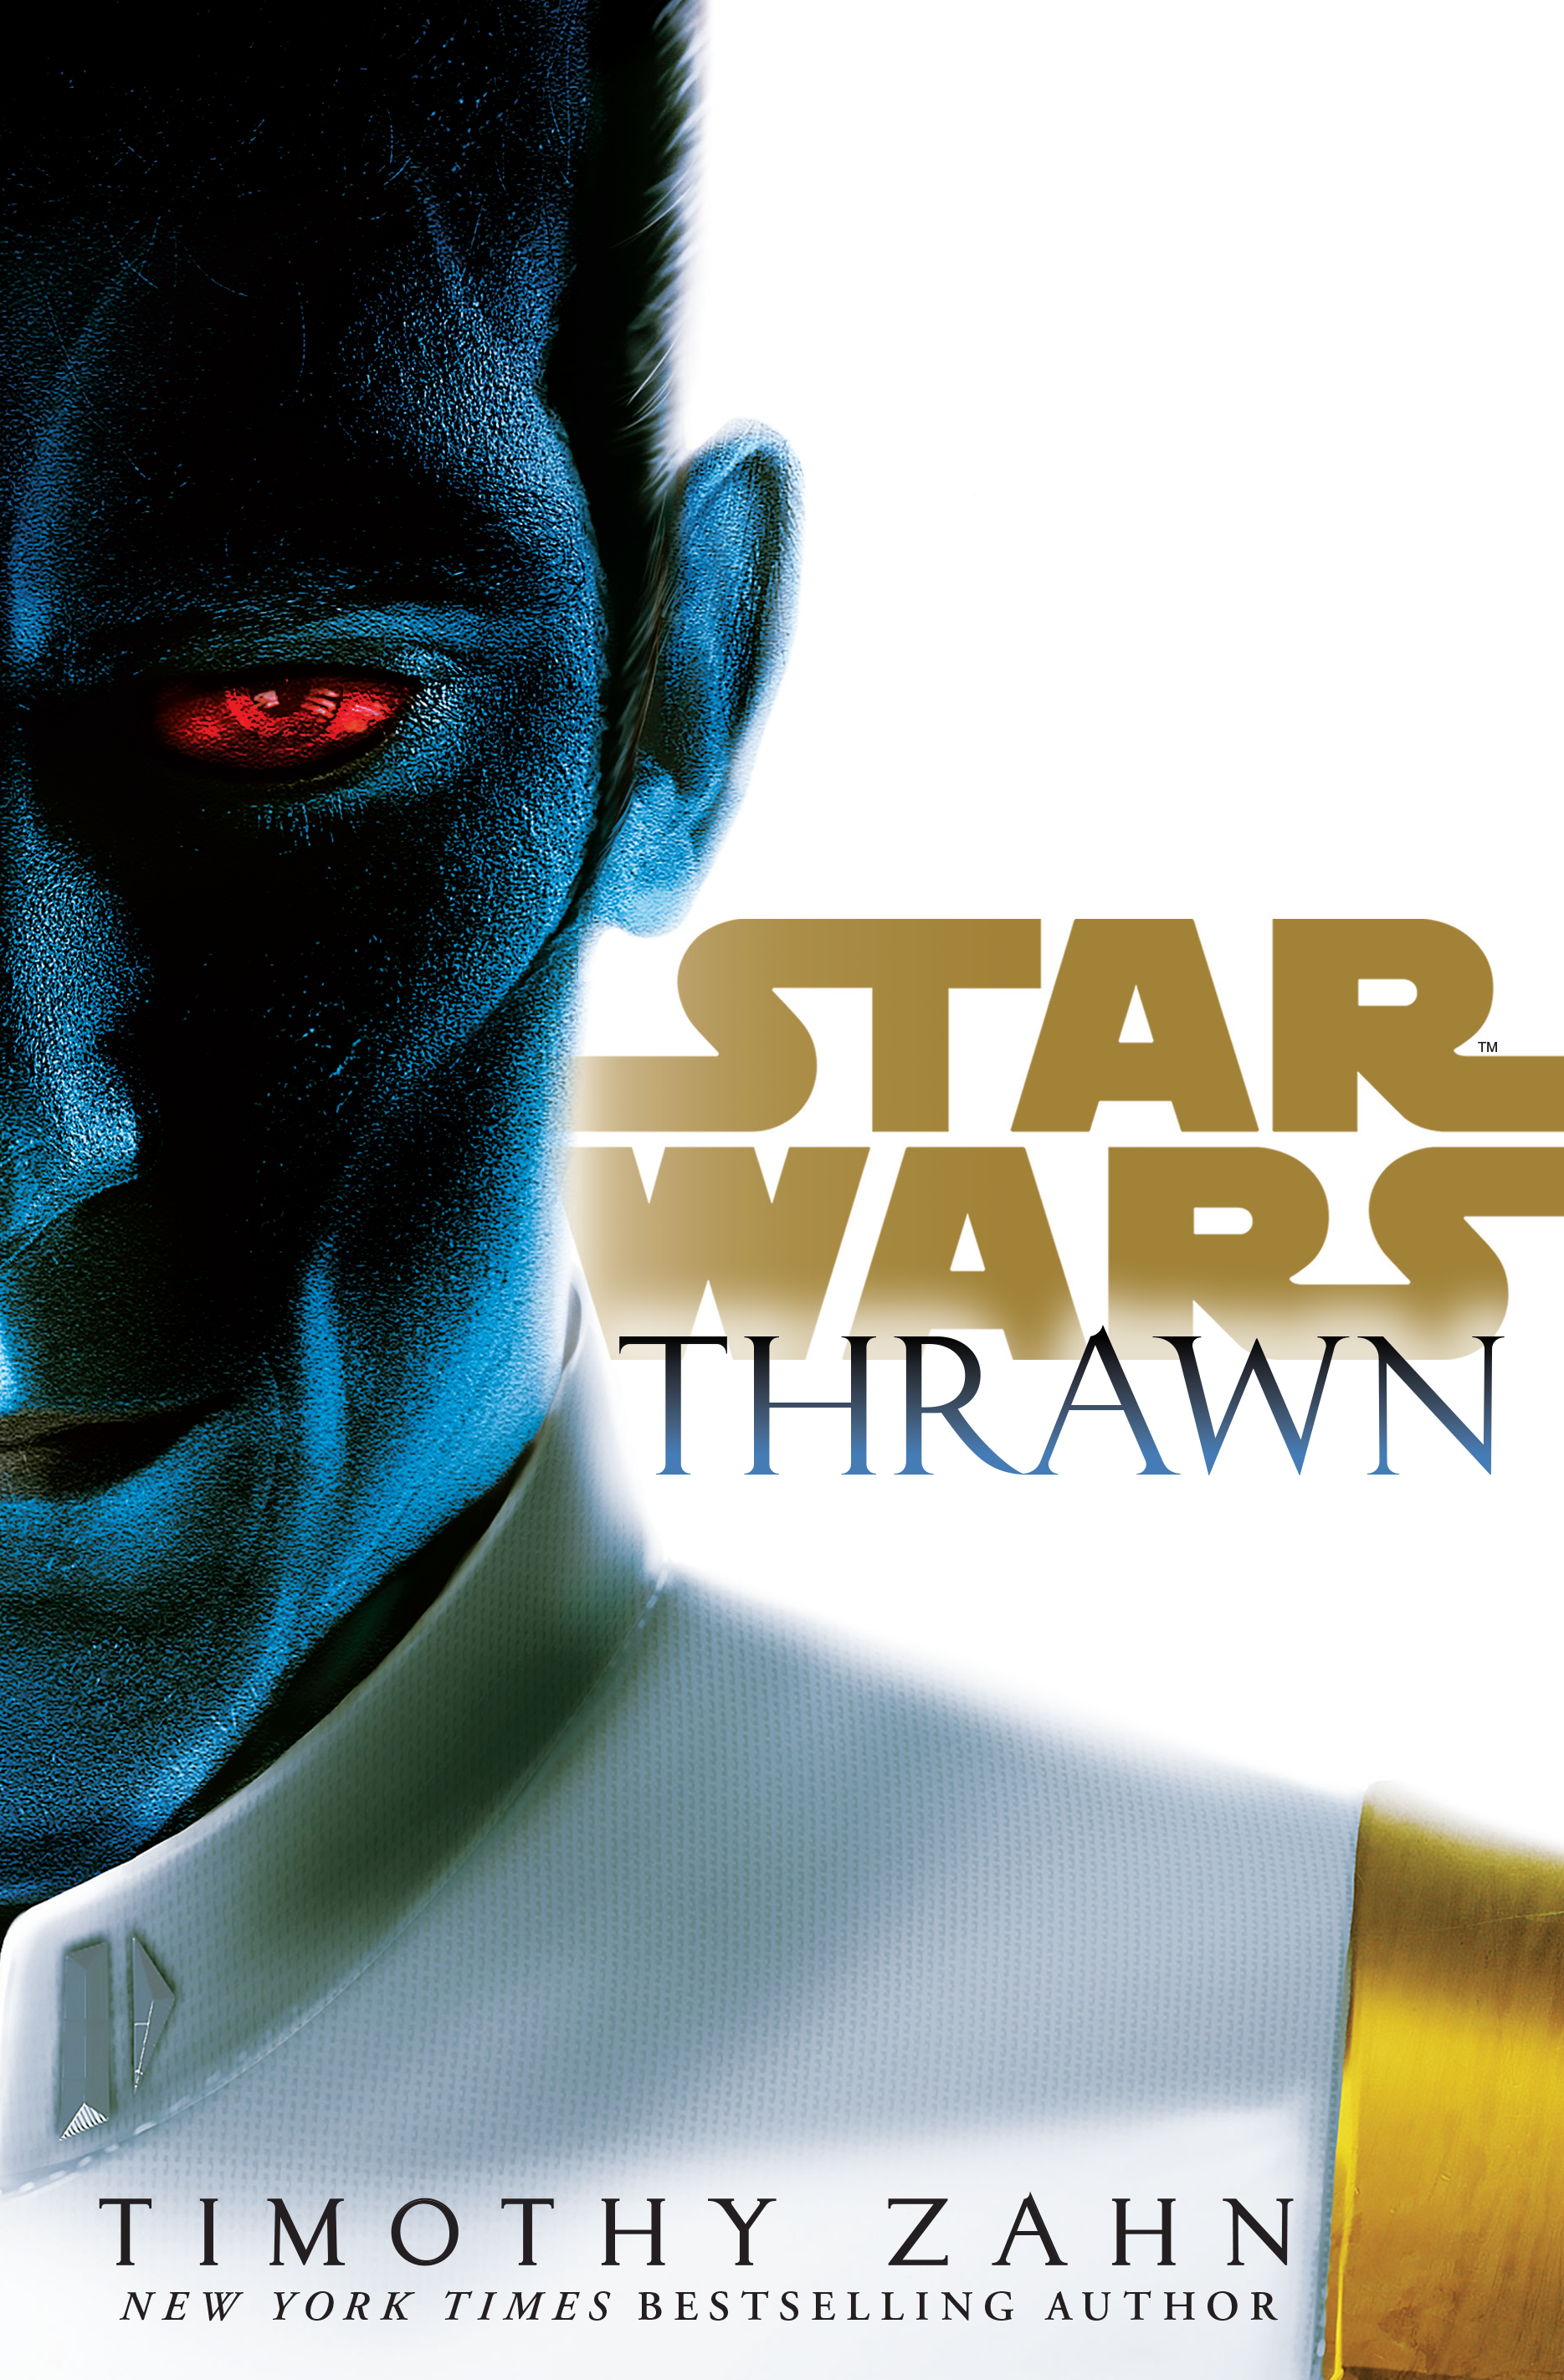 Thrawn (novel) | Wookieepedia | FANDOM powered by Wikia